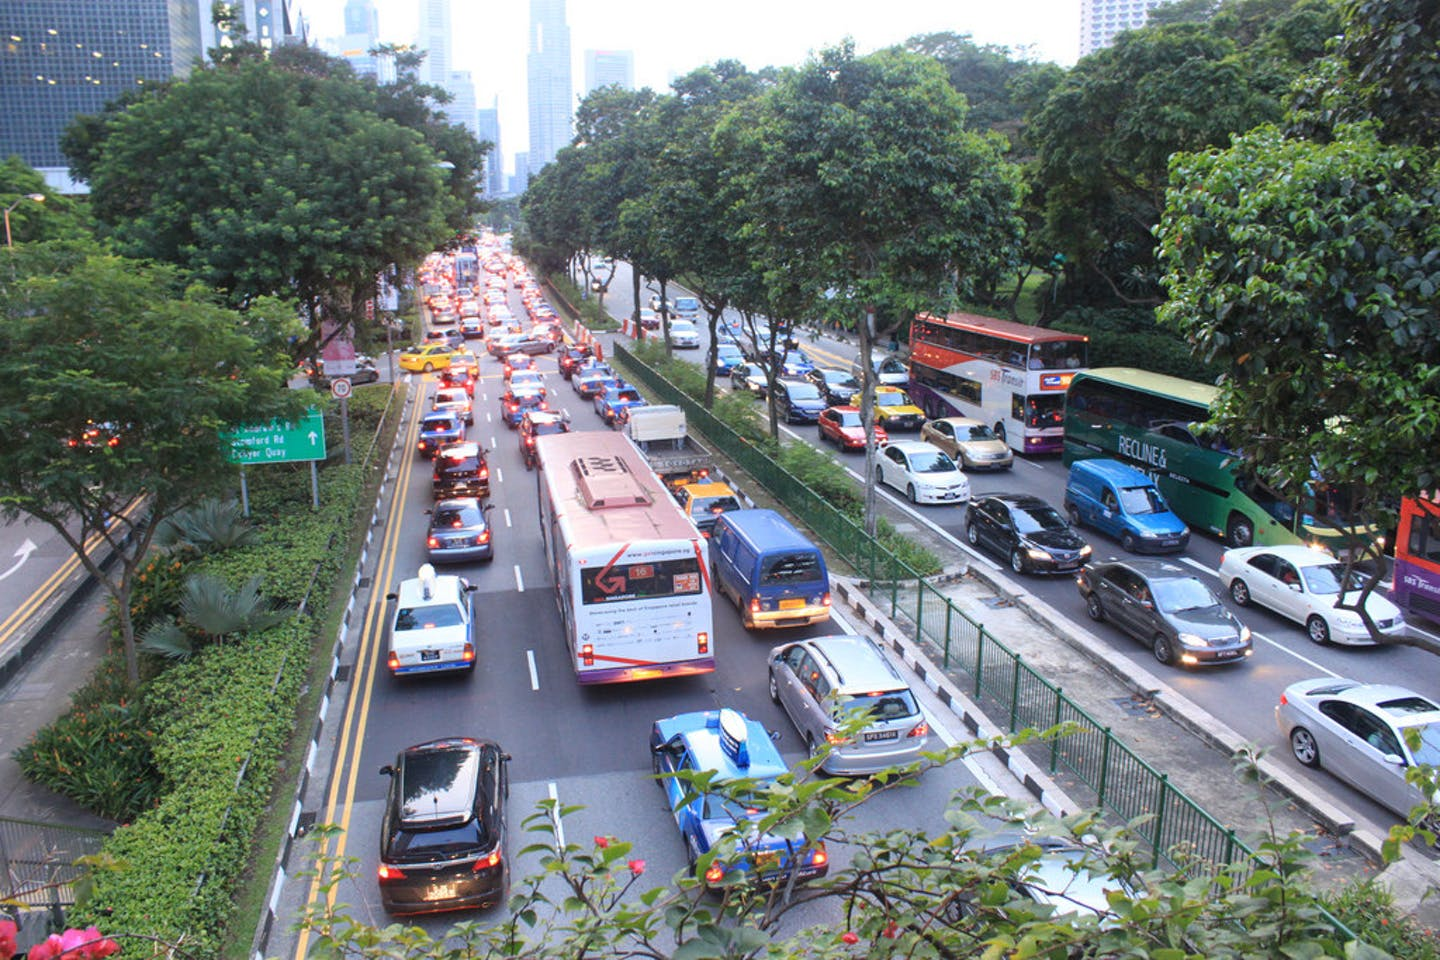 Traffic congestion in Singapore